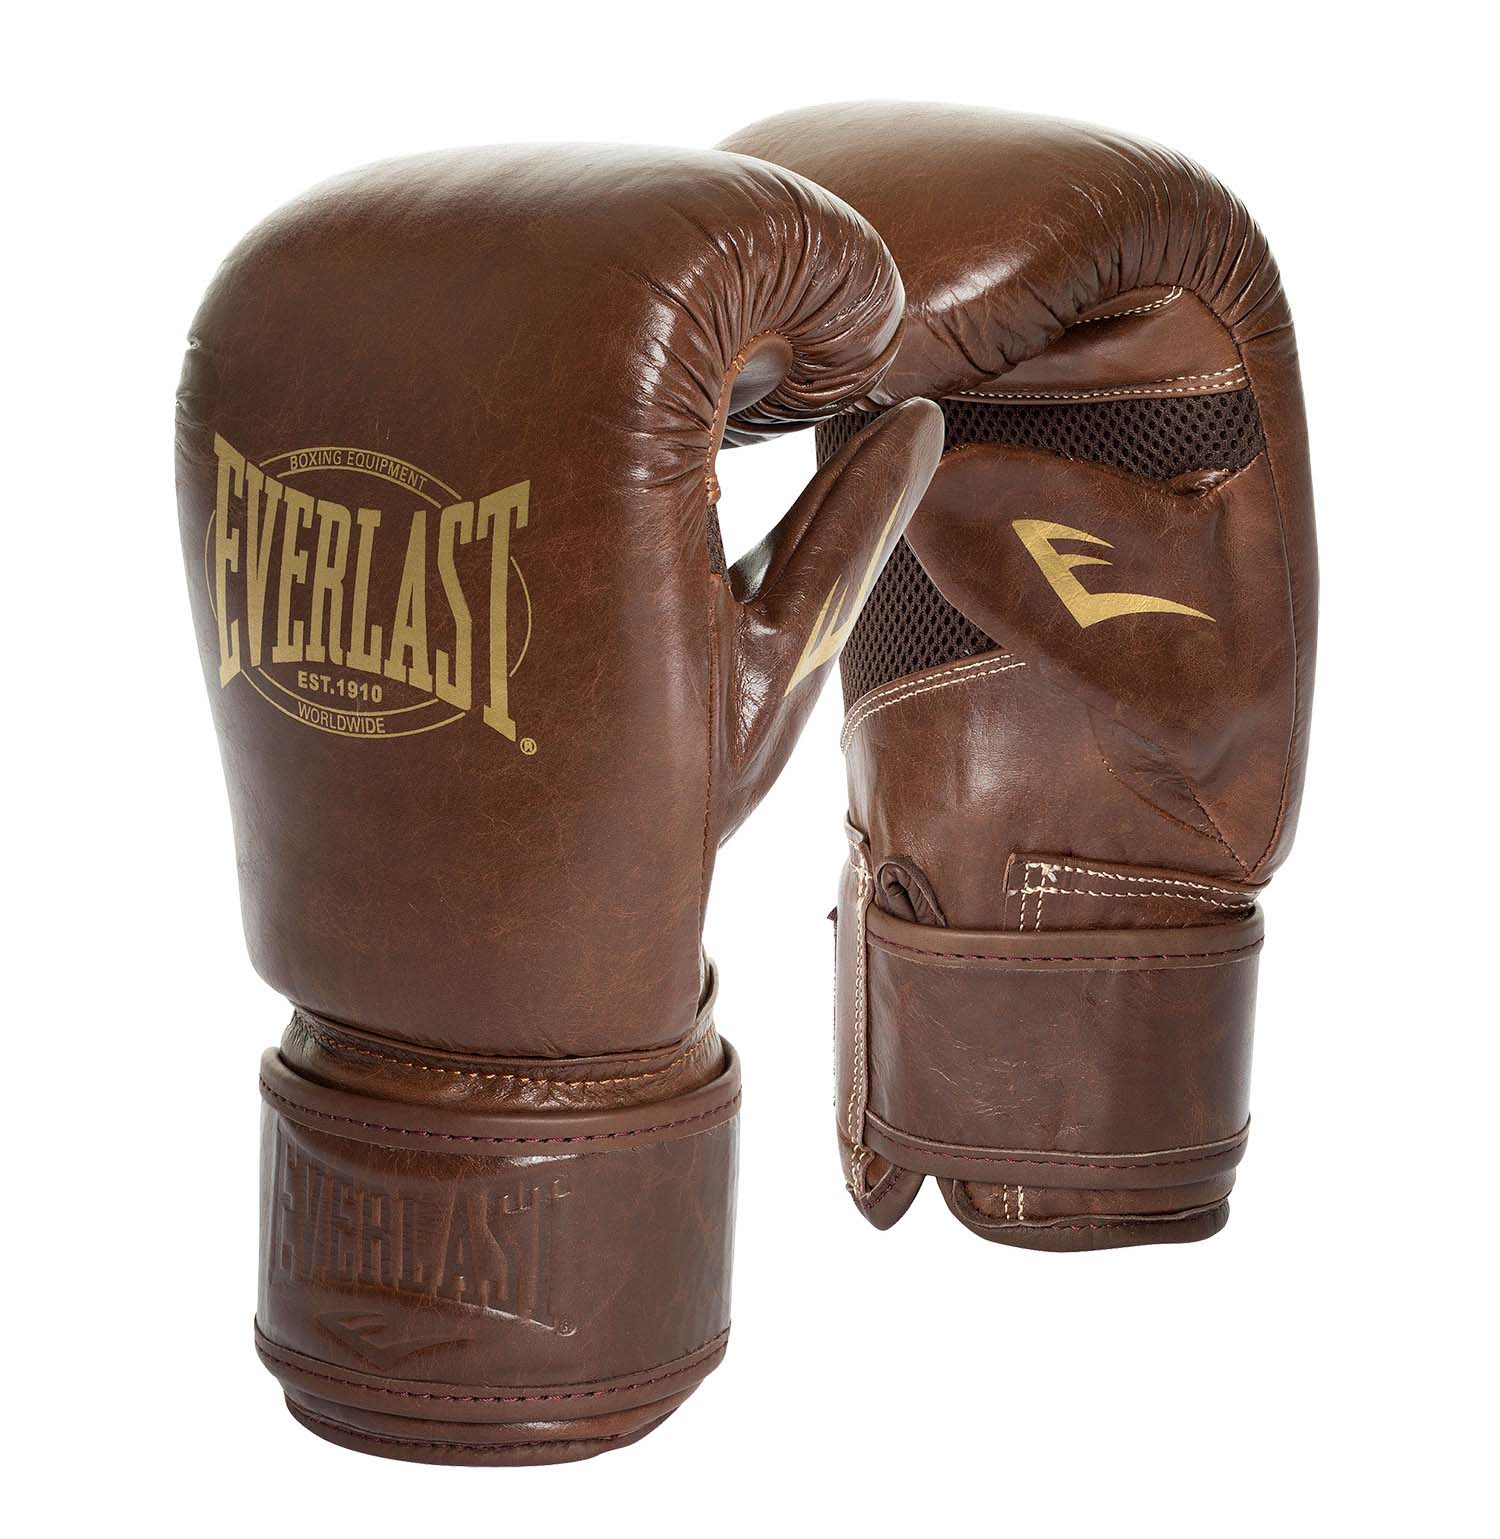 1910 LEATHER TRAINING GLOVE